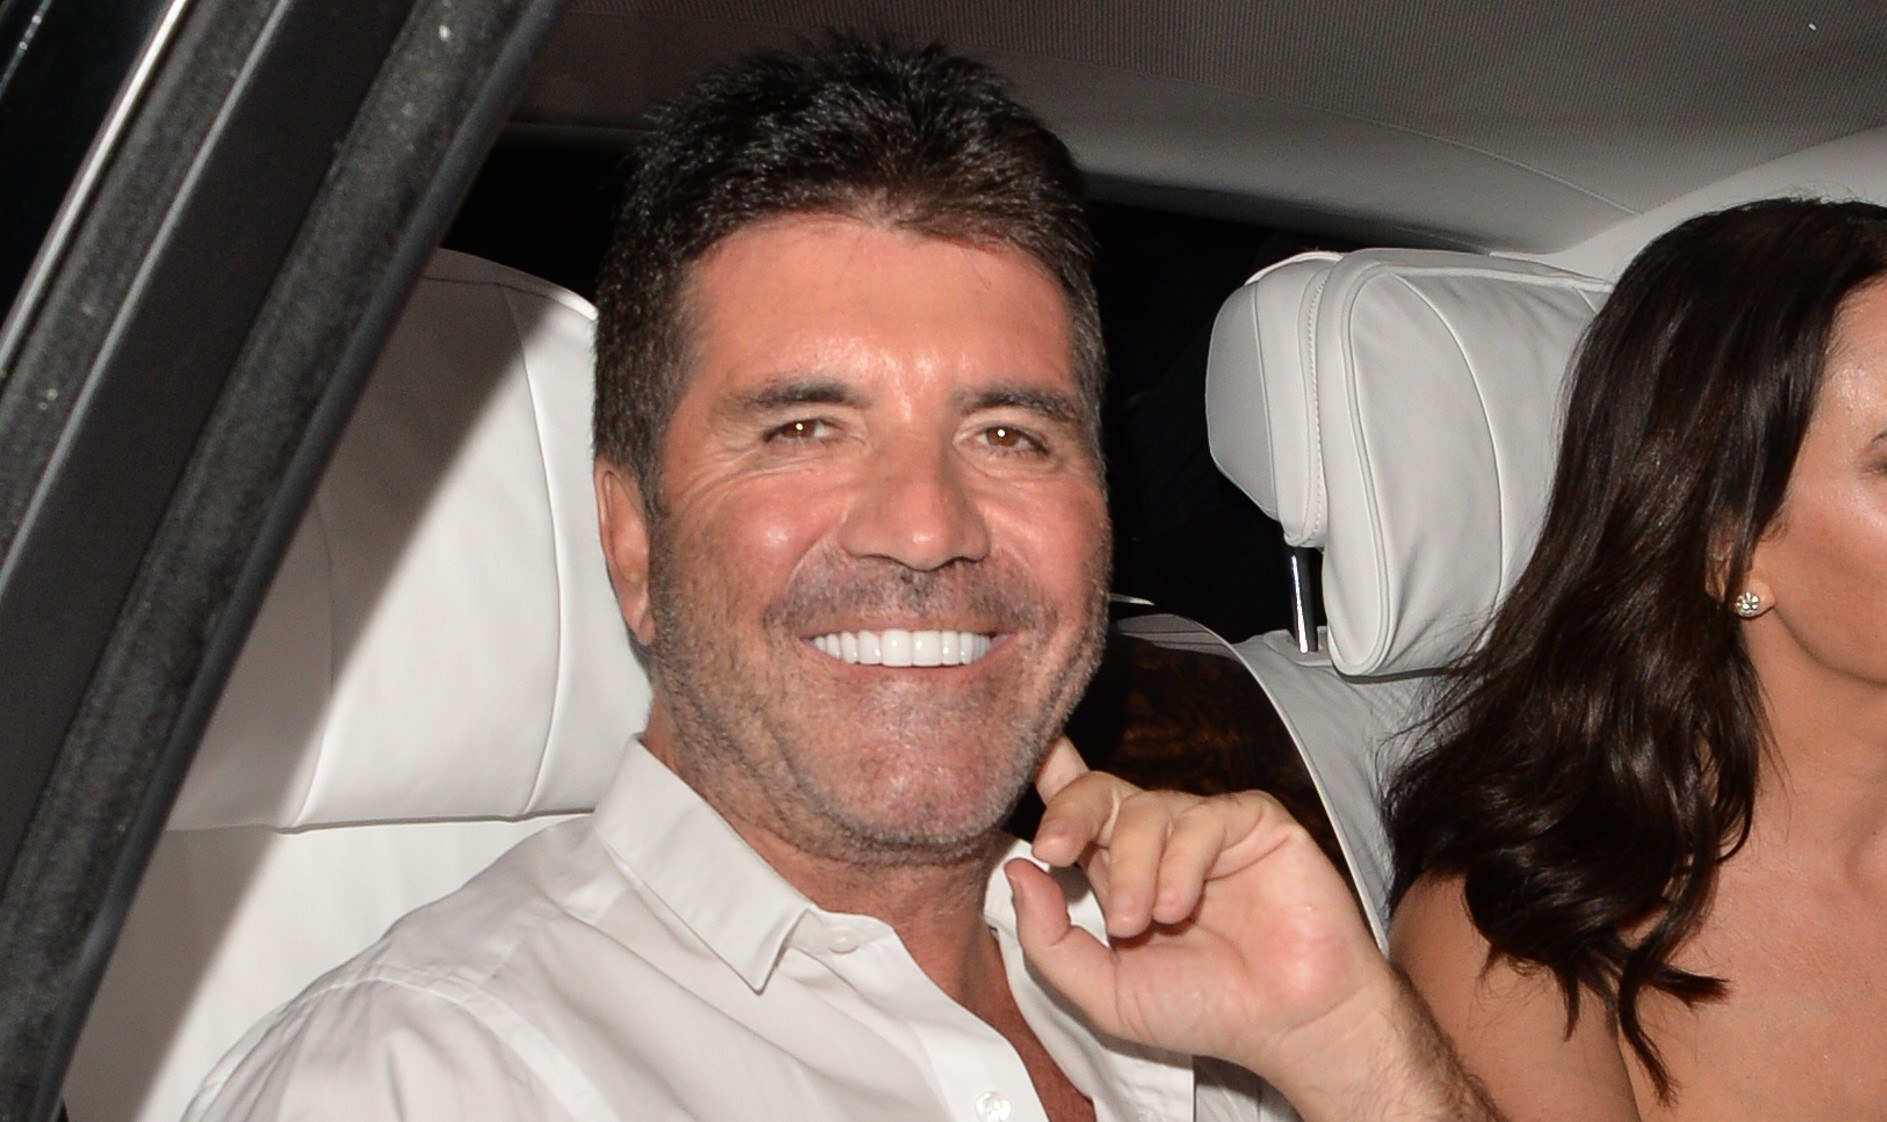 Simon Cowell 'to sign multi-million pound deal to keep X Factor and BGT on ITV'